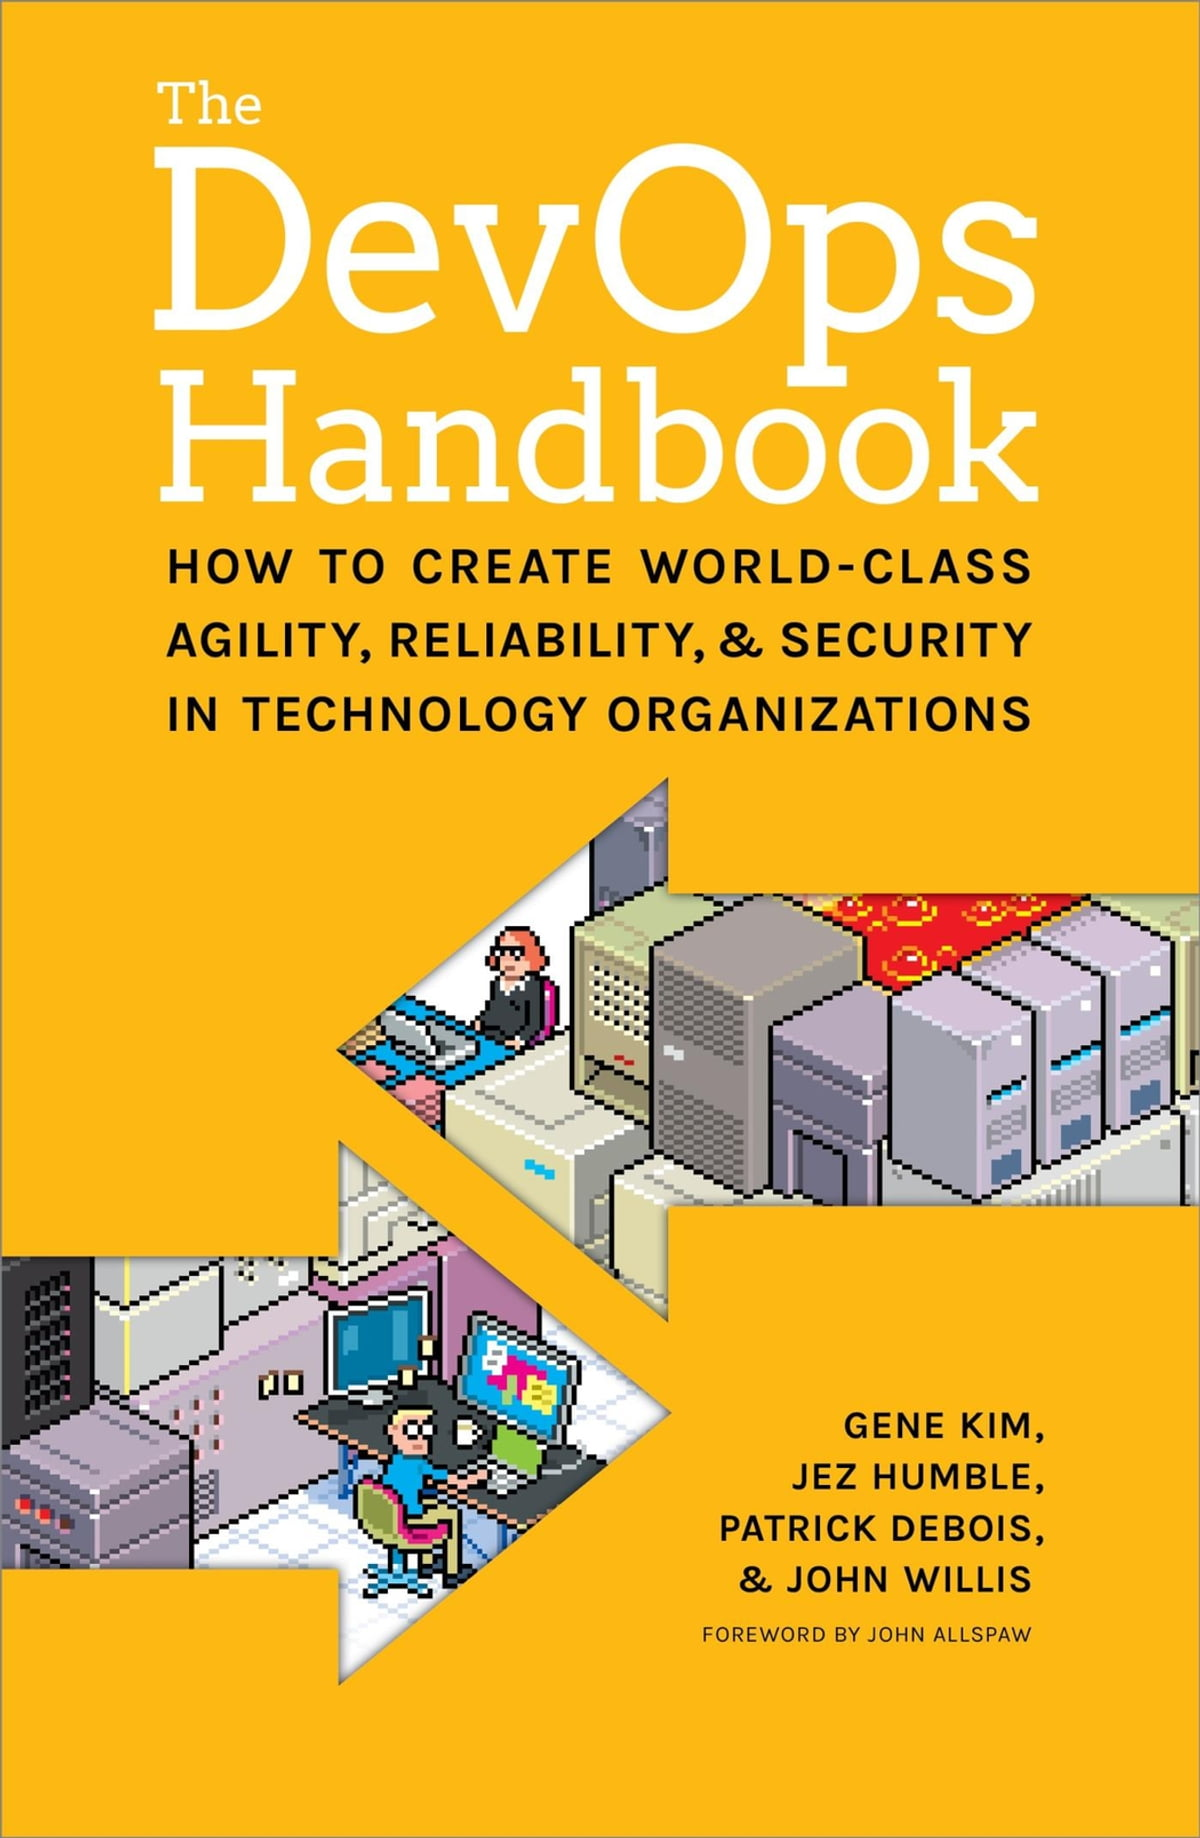 The Devops Handbook  How To Create Worldclass Agility, Reliability, And  Security